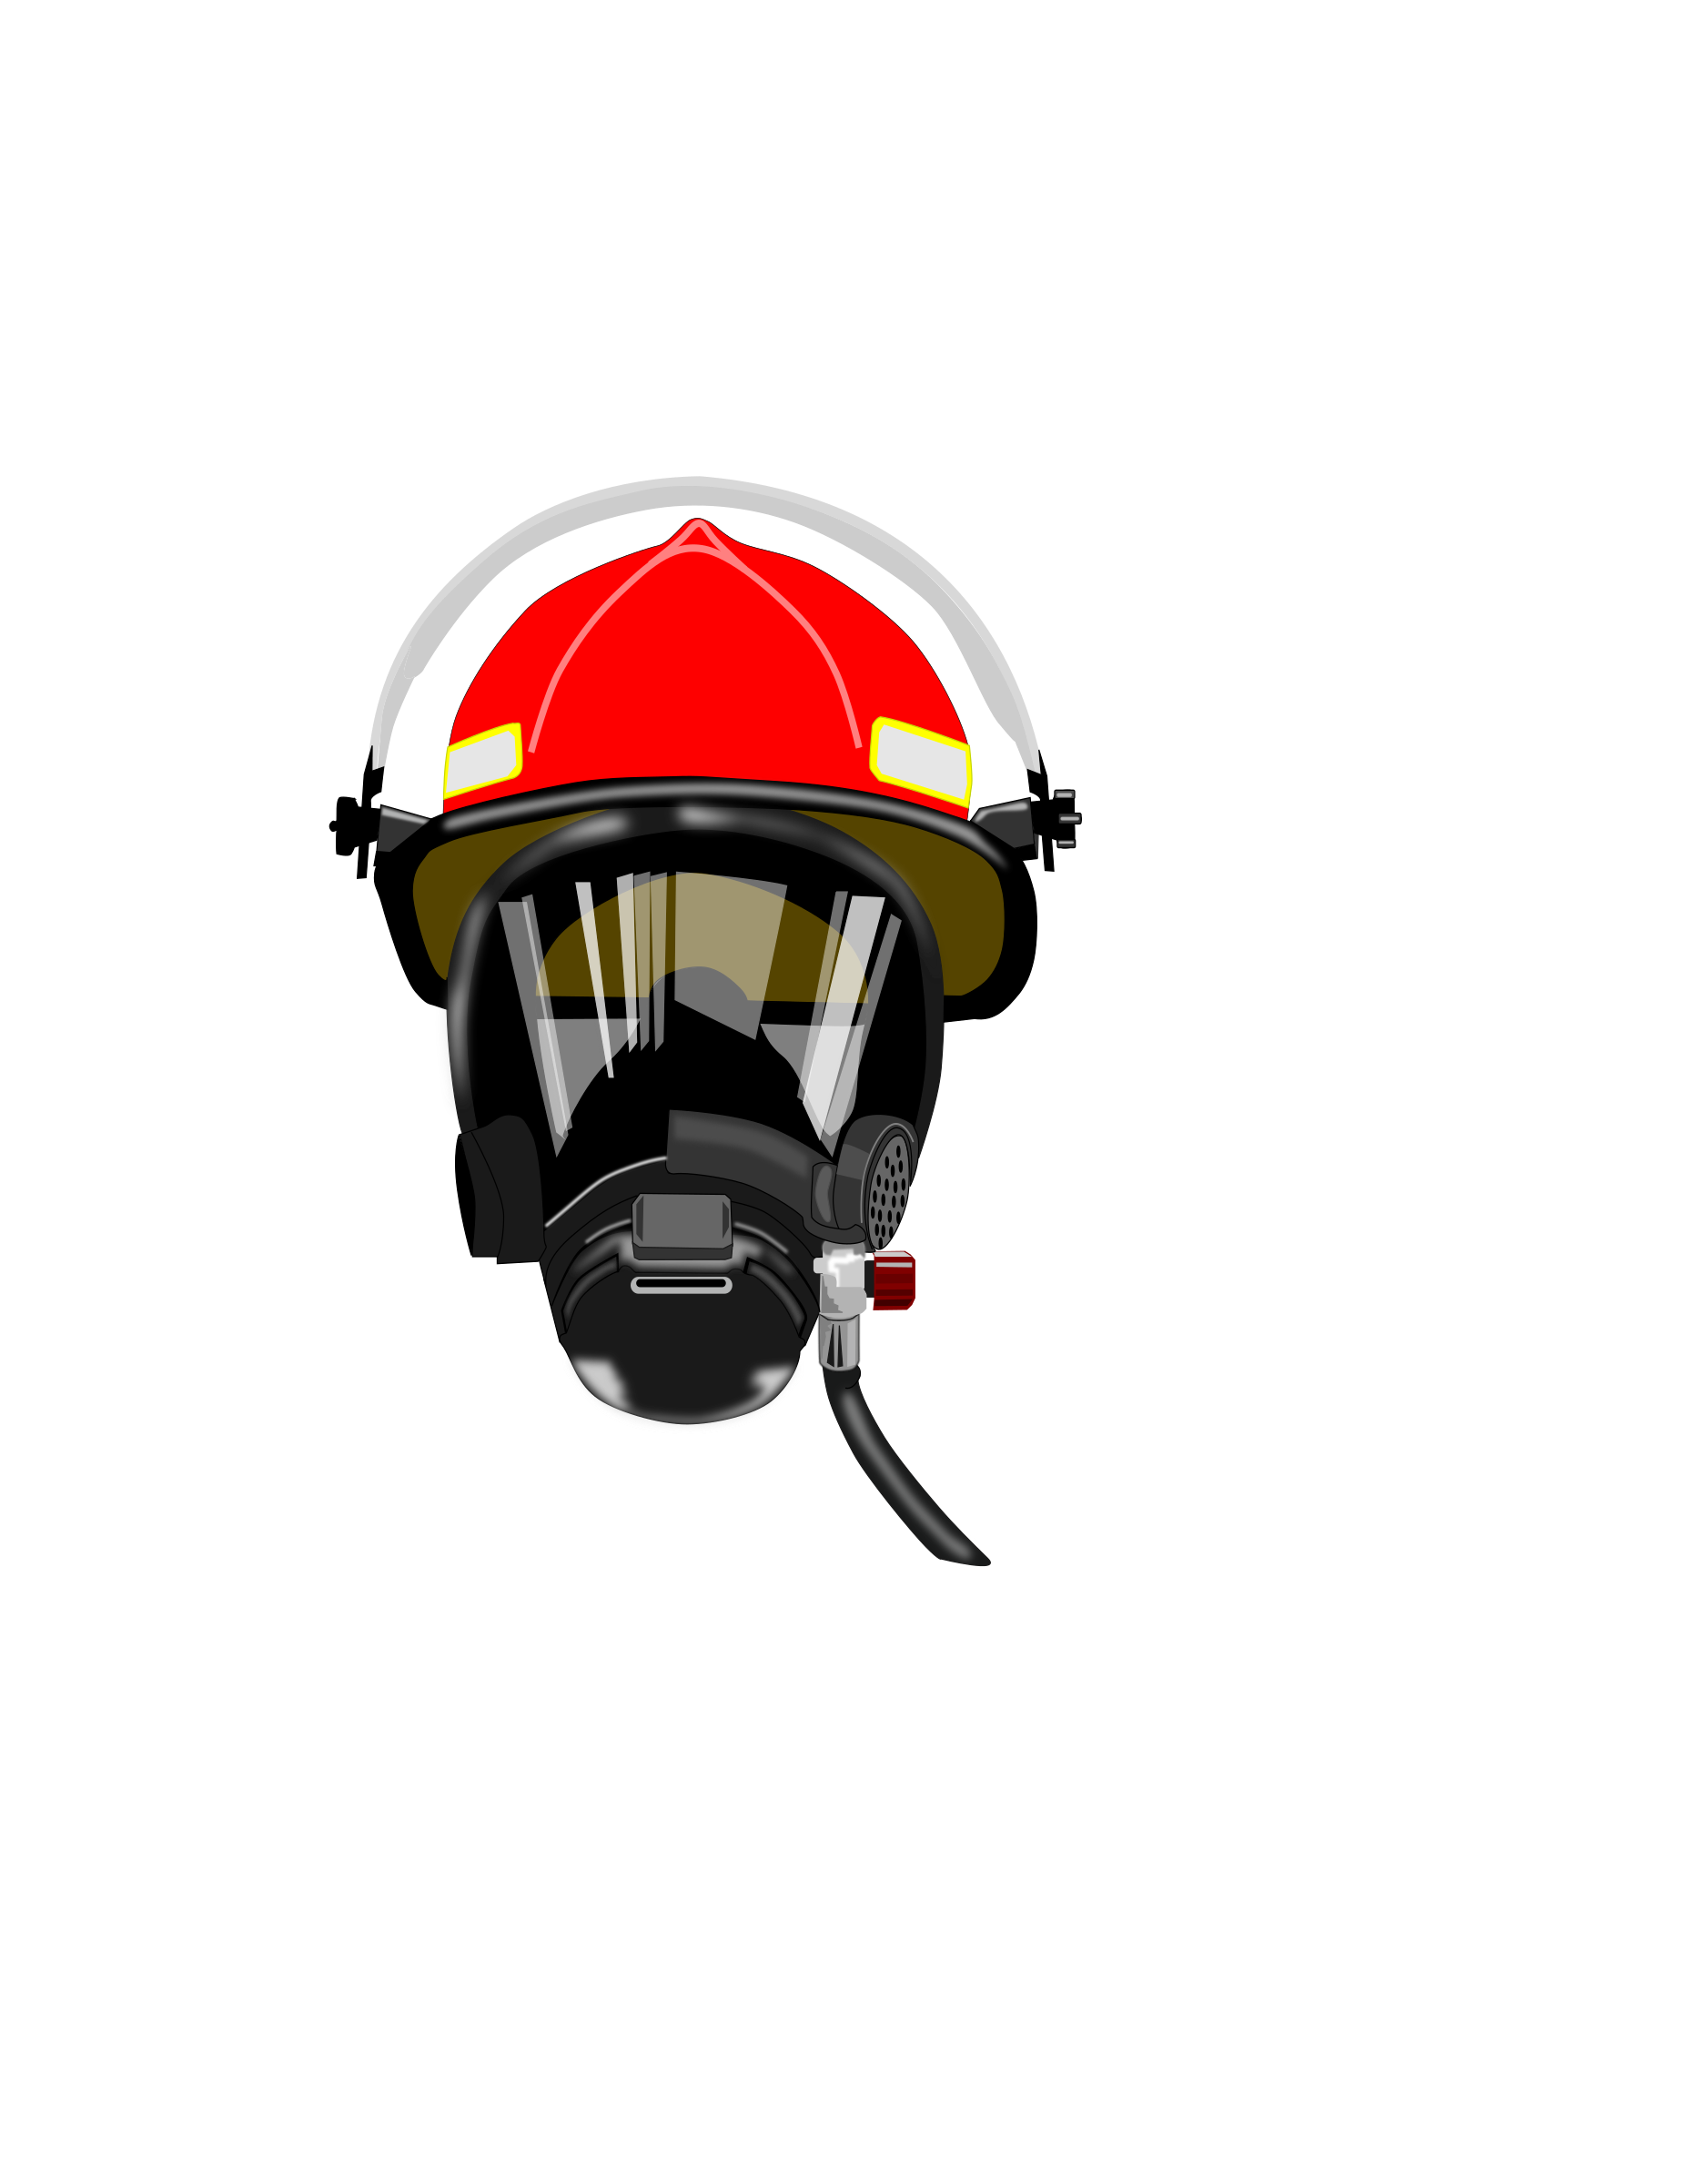 Firefighter kneeling at the cross clipart svg free Fire Helmet Silhouette at GetDrawings.com | Free for personal use ... svg free